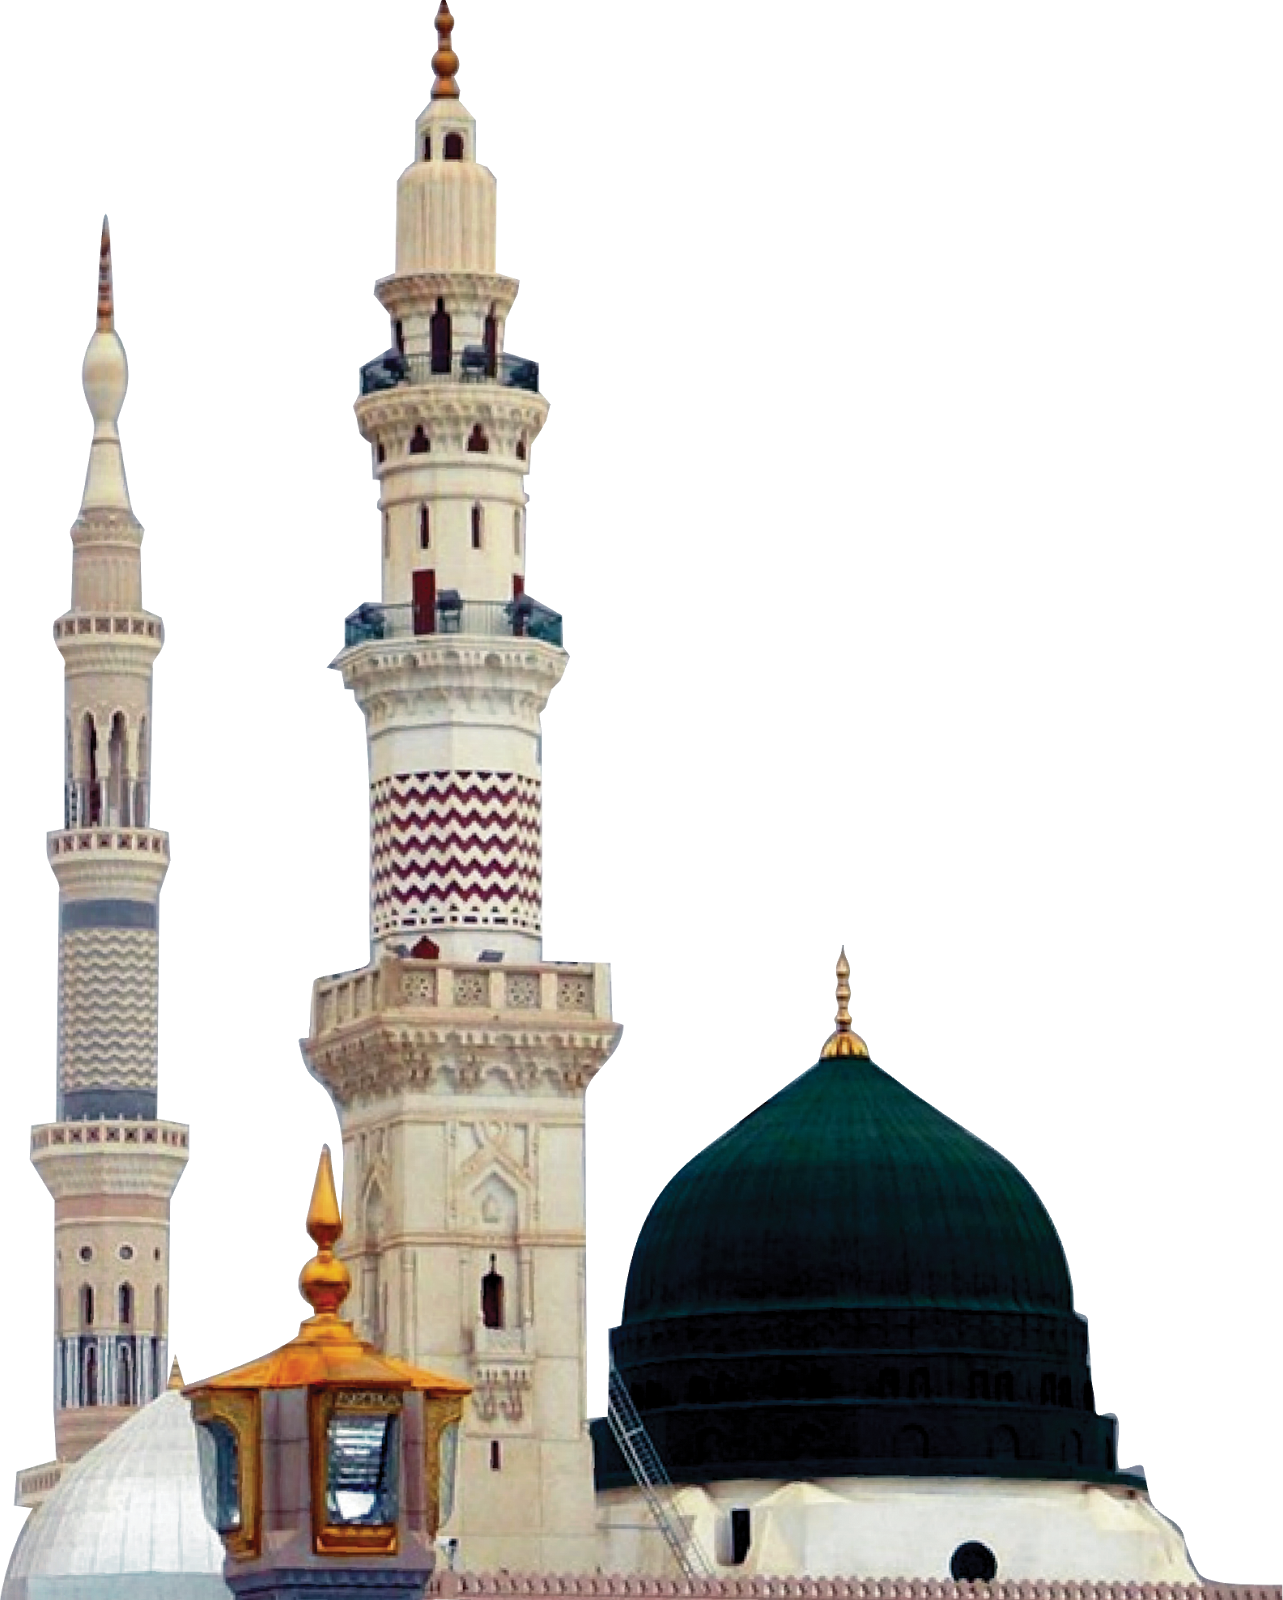 Posted 2nd April 2013 by Kashif Mir - Masjid Nabawi PNG